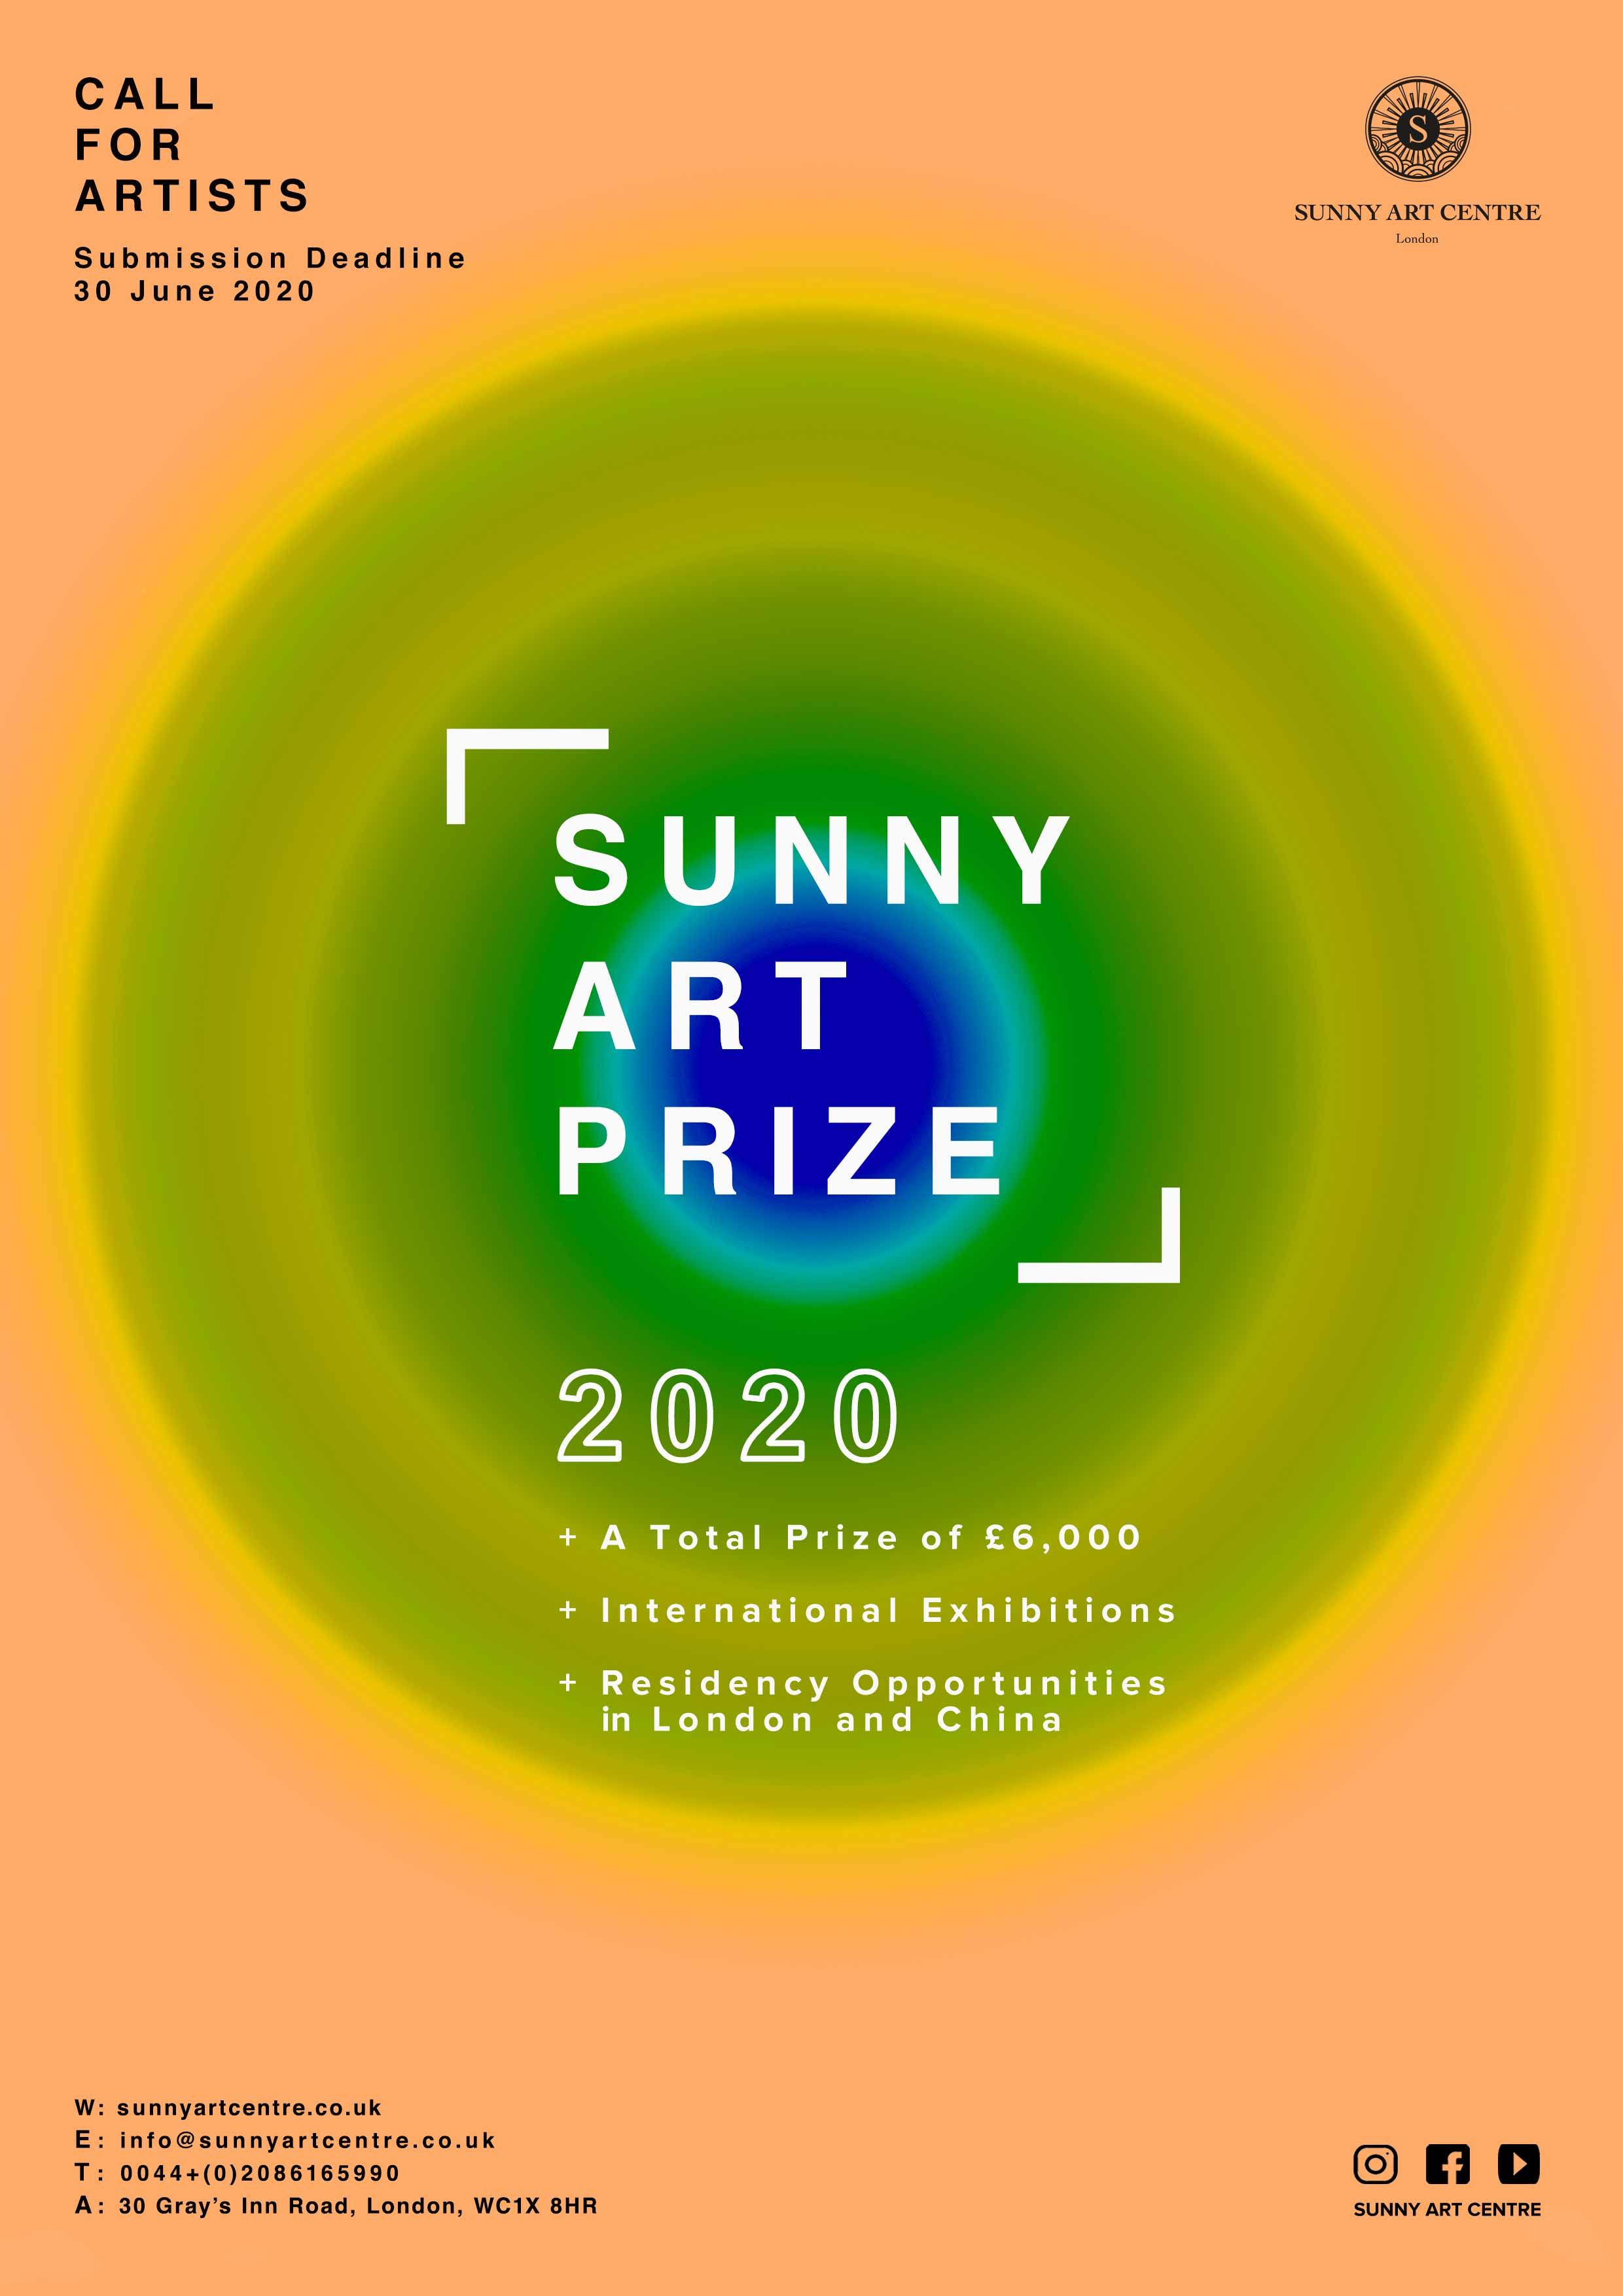 Open Call for Artists - Sunny Art Prize 2020